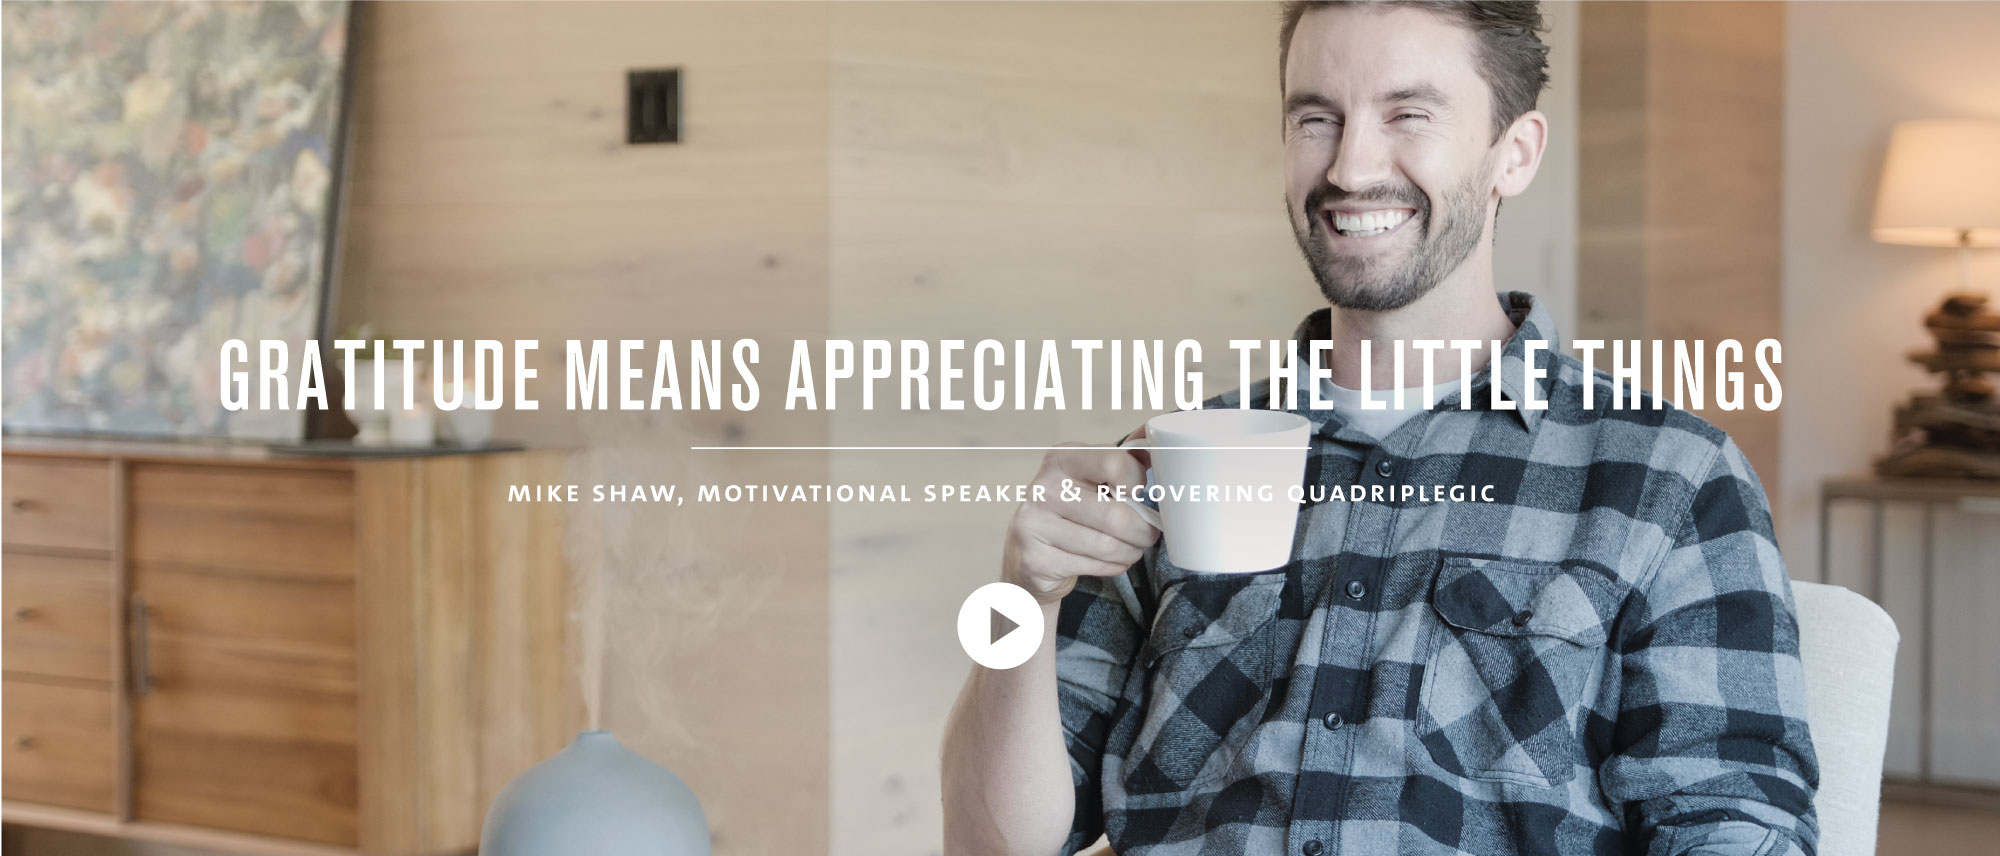 For Mike Shaw, gratitude means appreciating the little things